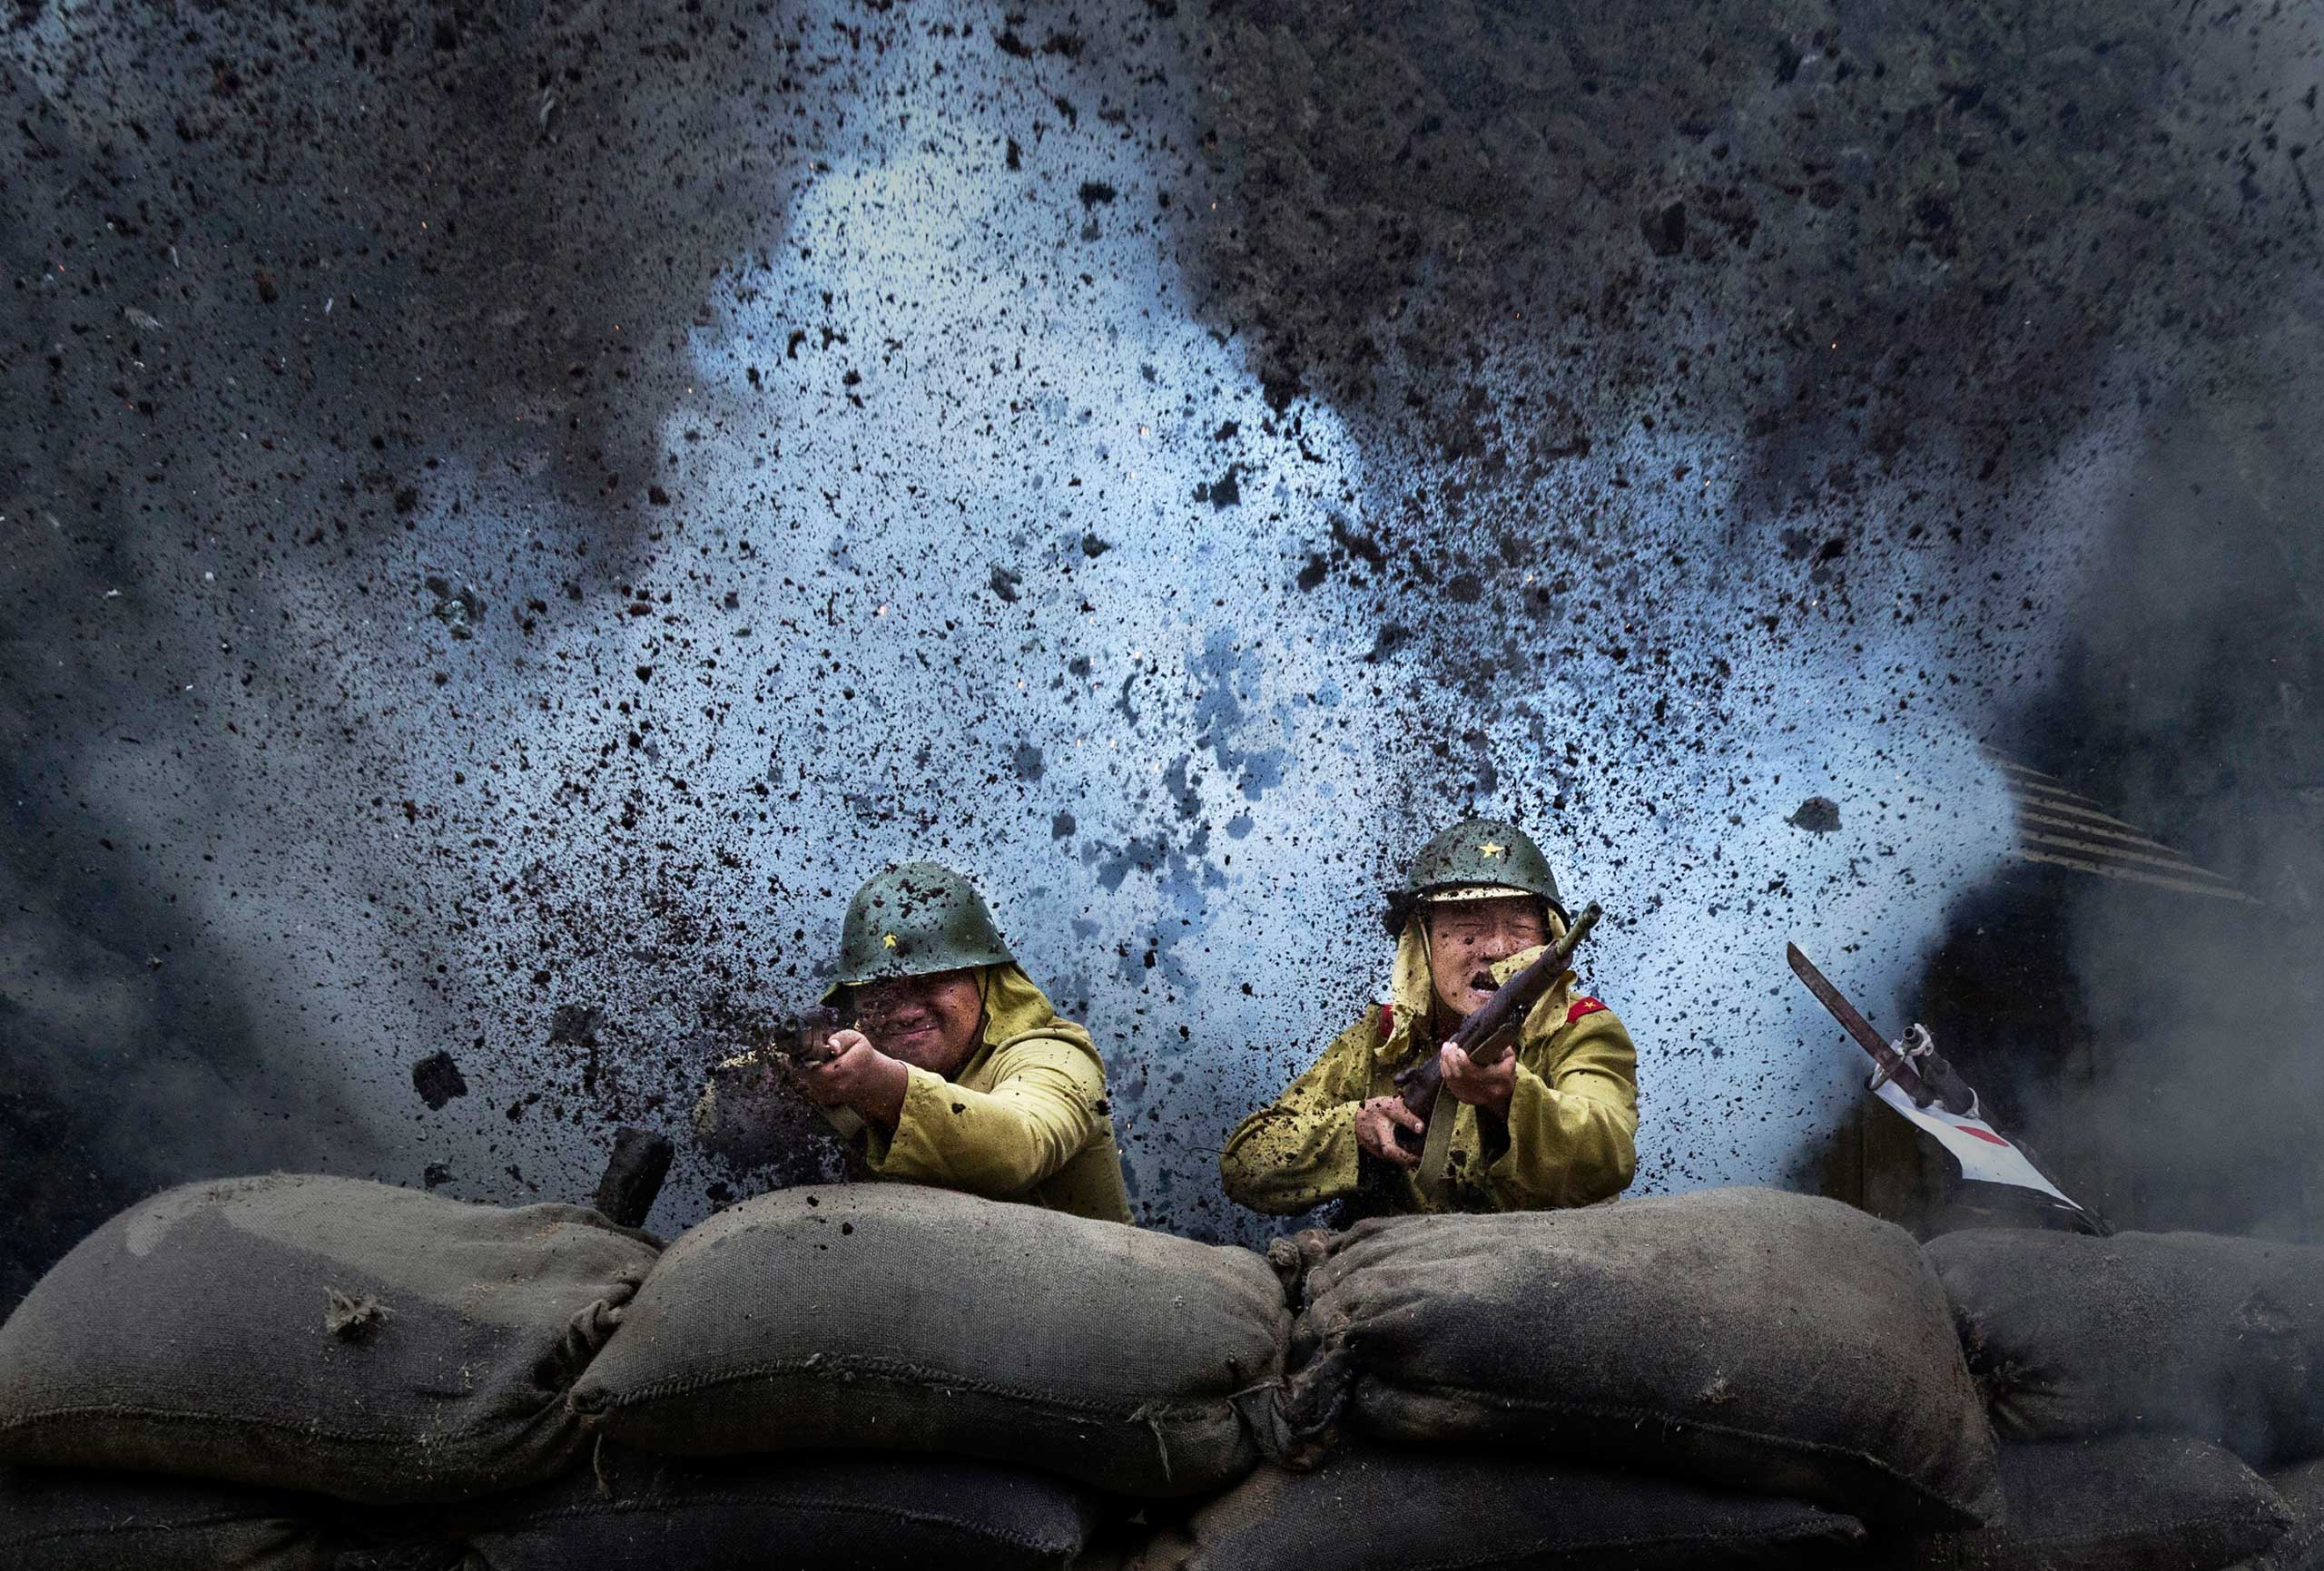 An explosion goes off as Chinese actors playing Japanese soldiers are filmed in a battle scene during filming of the series The Last Noble, in Fangyan, on Aug. 13, 2015.